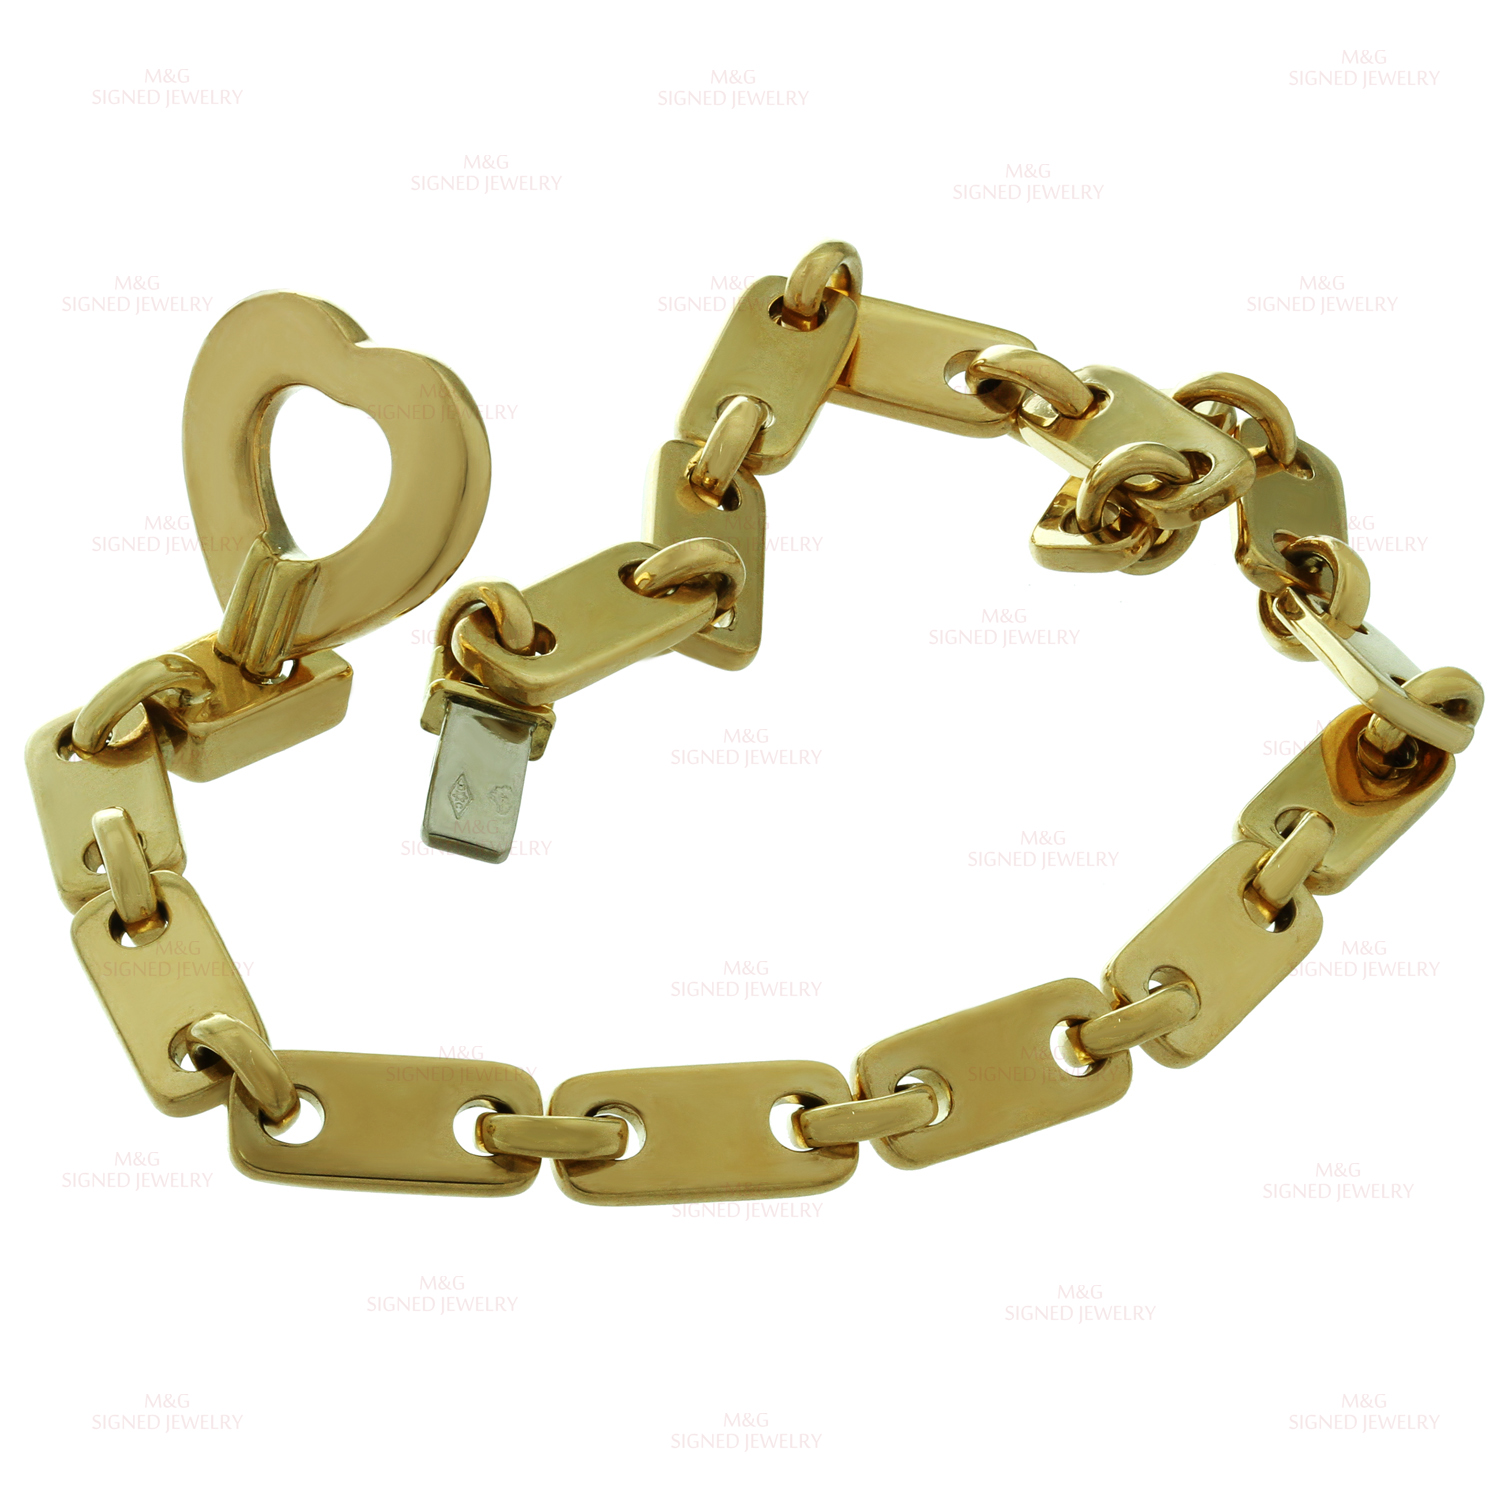 9bf745884b10 CARTIER Fidelity 18k Yellow Gold Heart Key Bar Link Bracelet